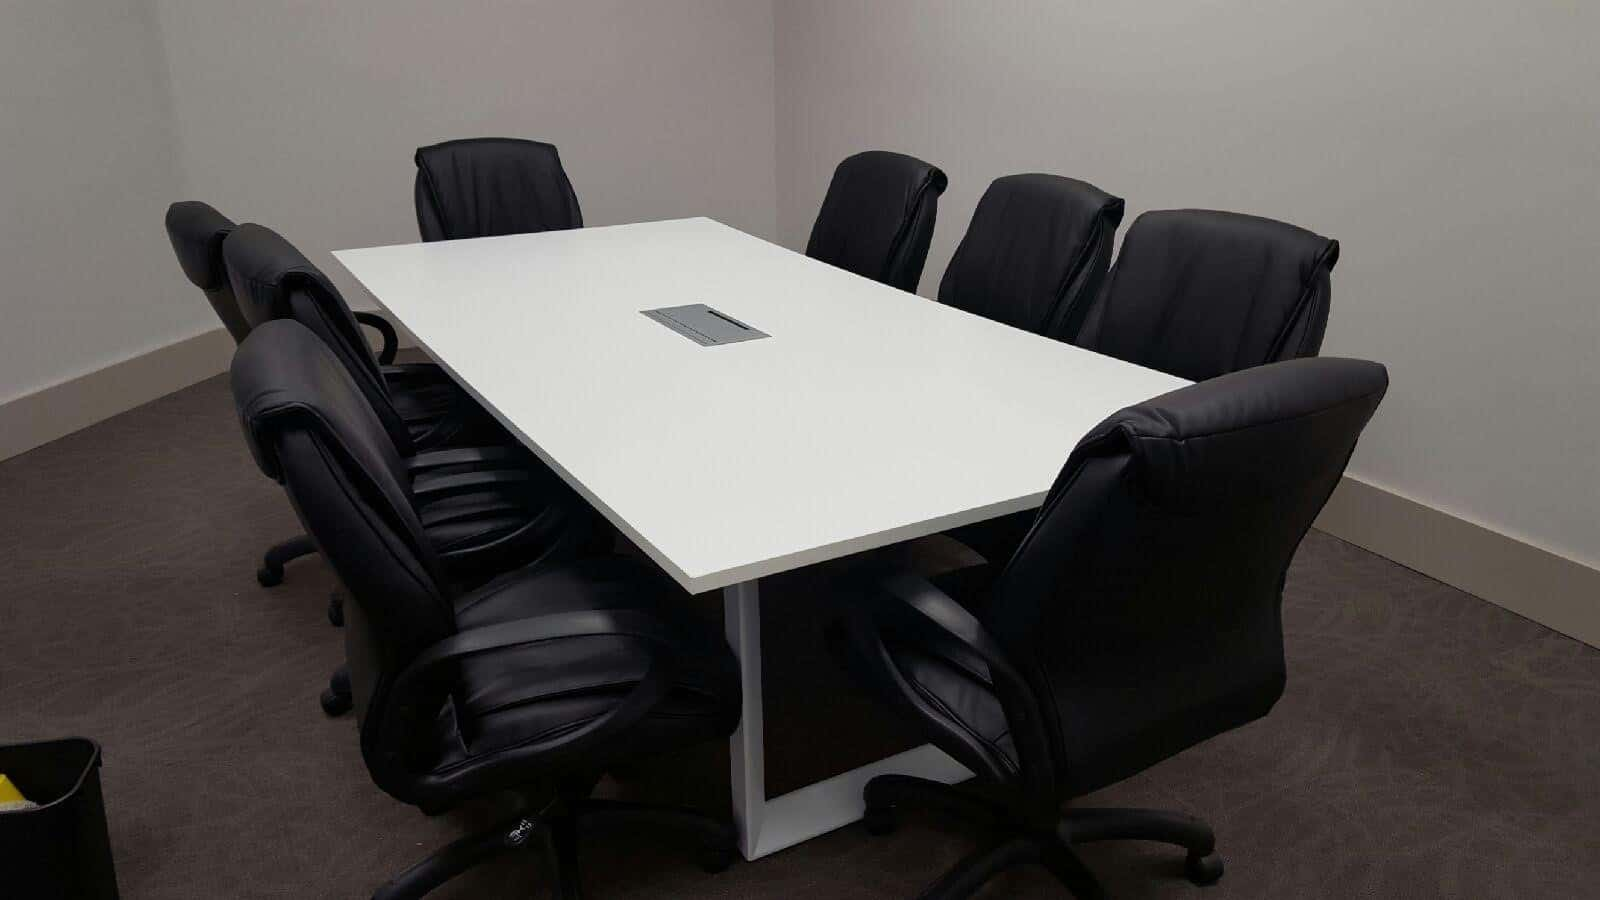 New Fineline Enhanced Foot Rectangular Conference Table With Power - 8 foot conference table and chairs